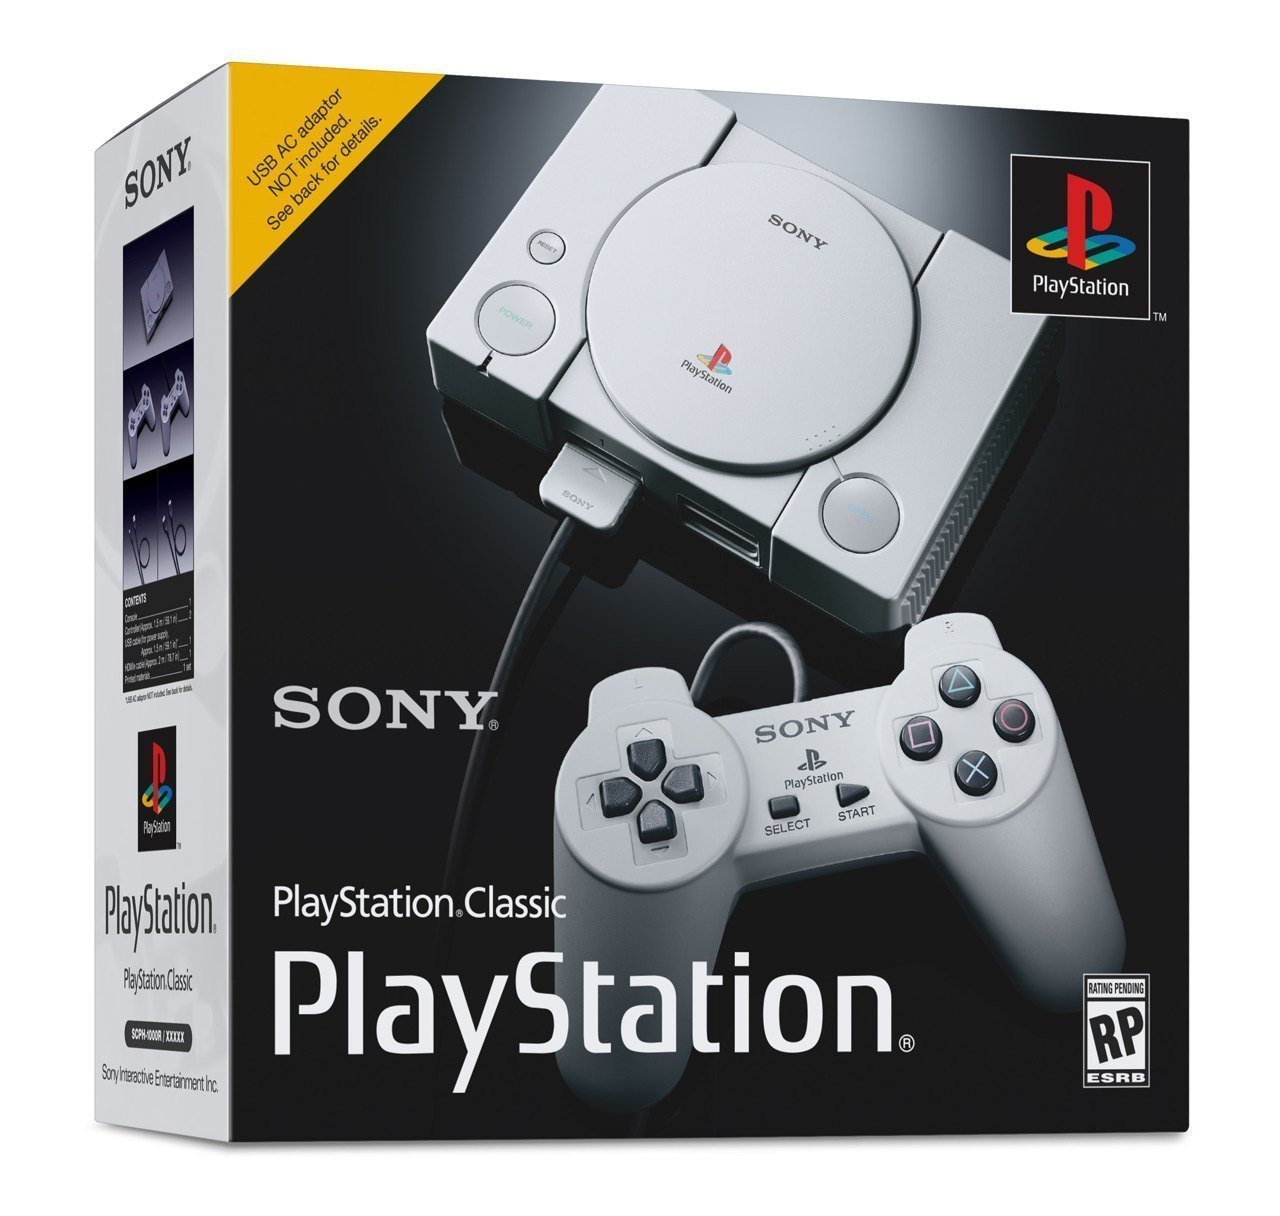 Get Your Retro Fix With Sony's PlayStation Classic Mini Console